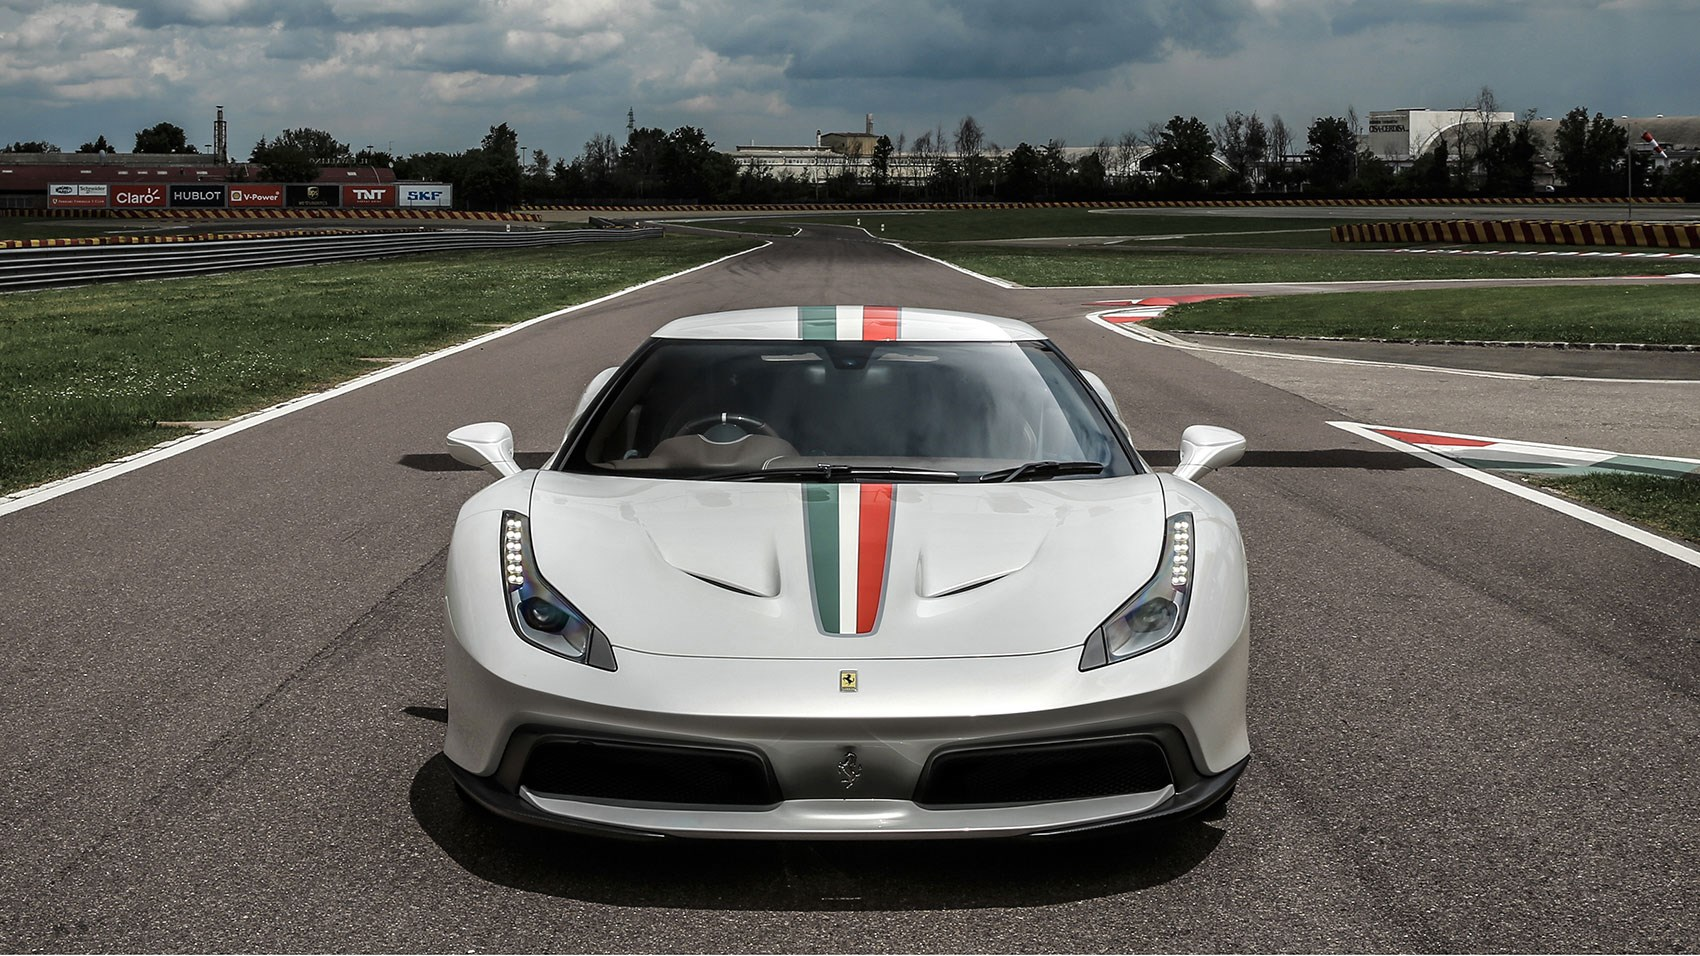 engine california t a on insurance full specifications en technical price how ferrari much is